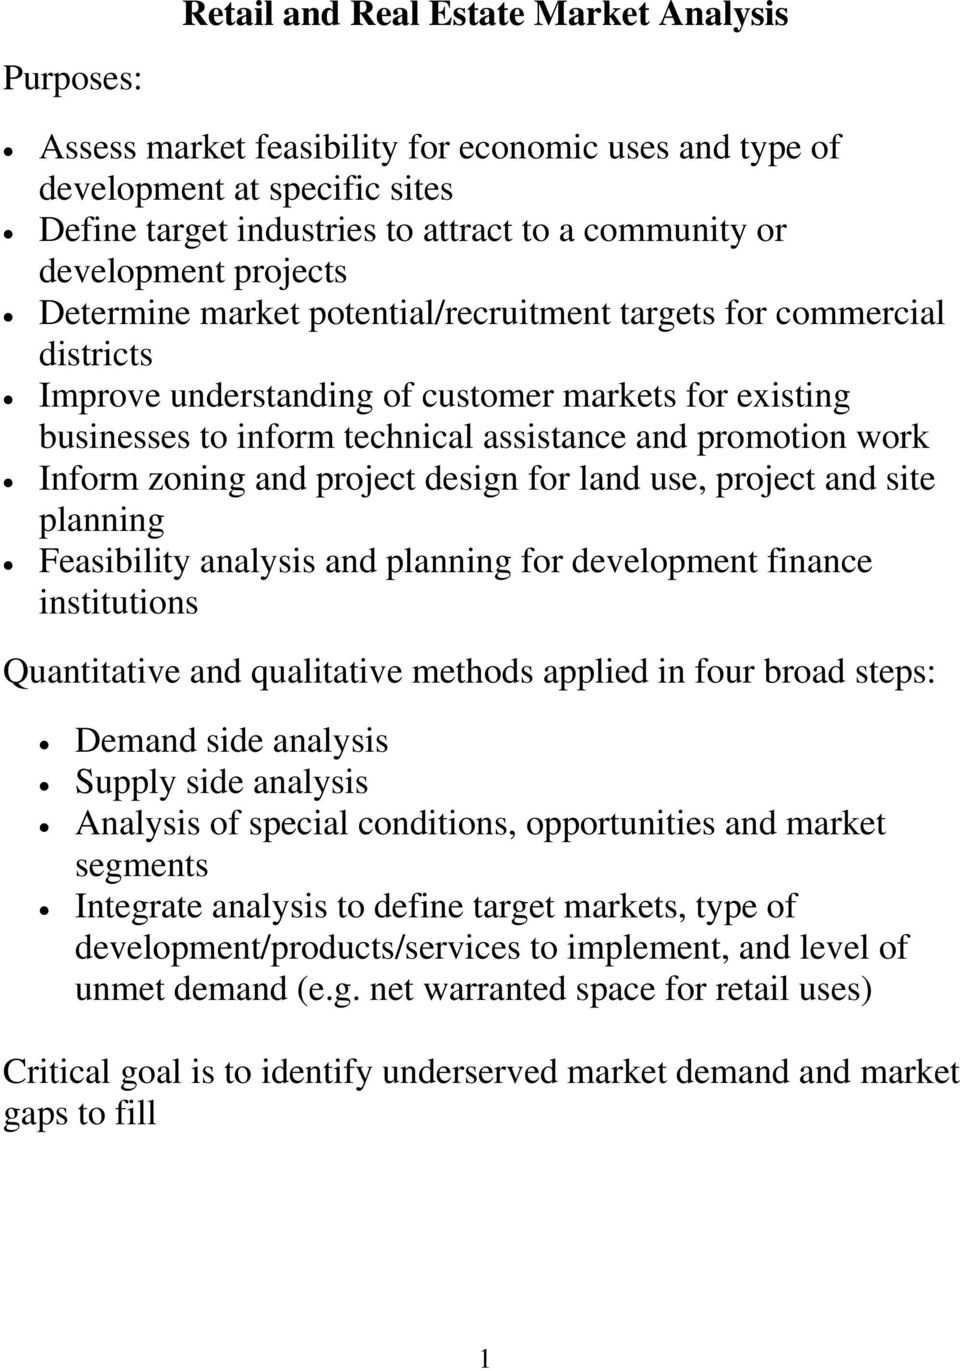 promotion work Inform zoning and project design for land use, project and site planning Feasibility analysis and planning for development finance institutions Quantitative and qualitative methods